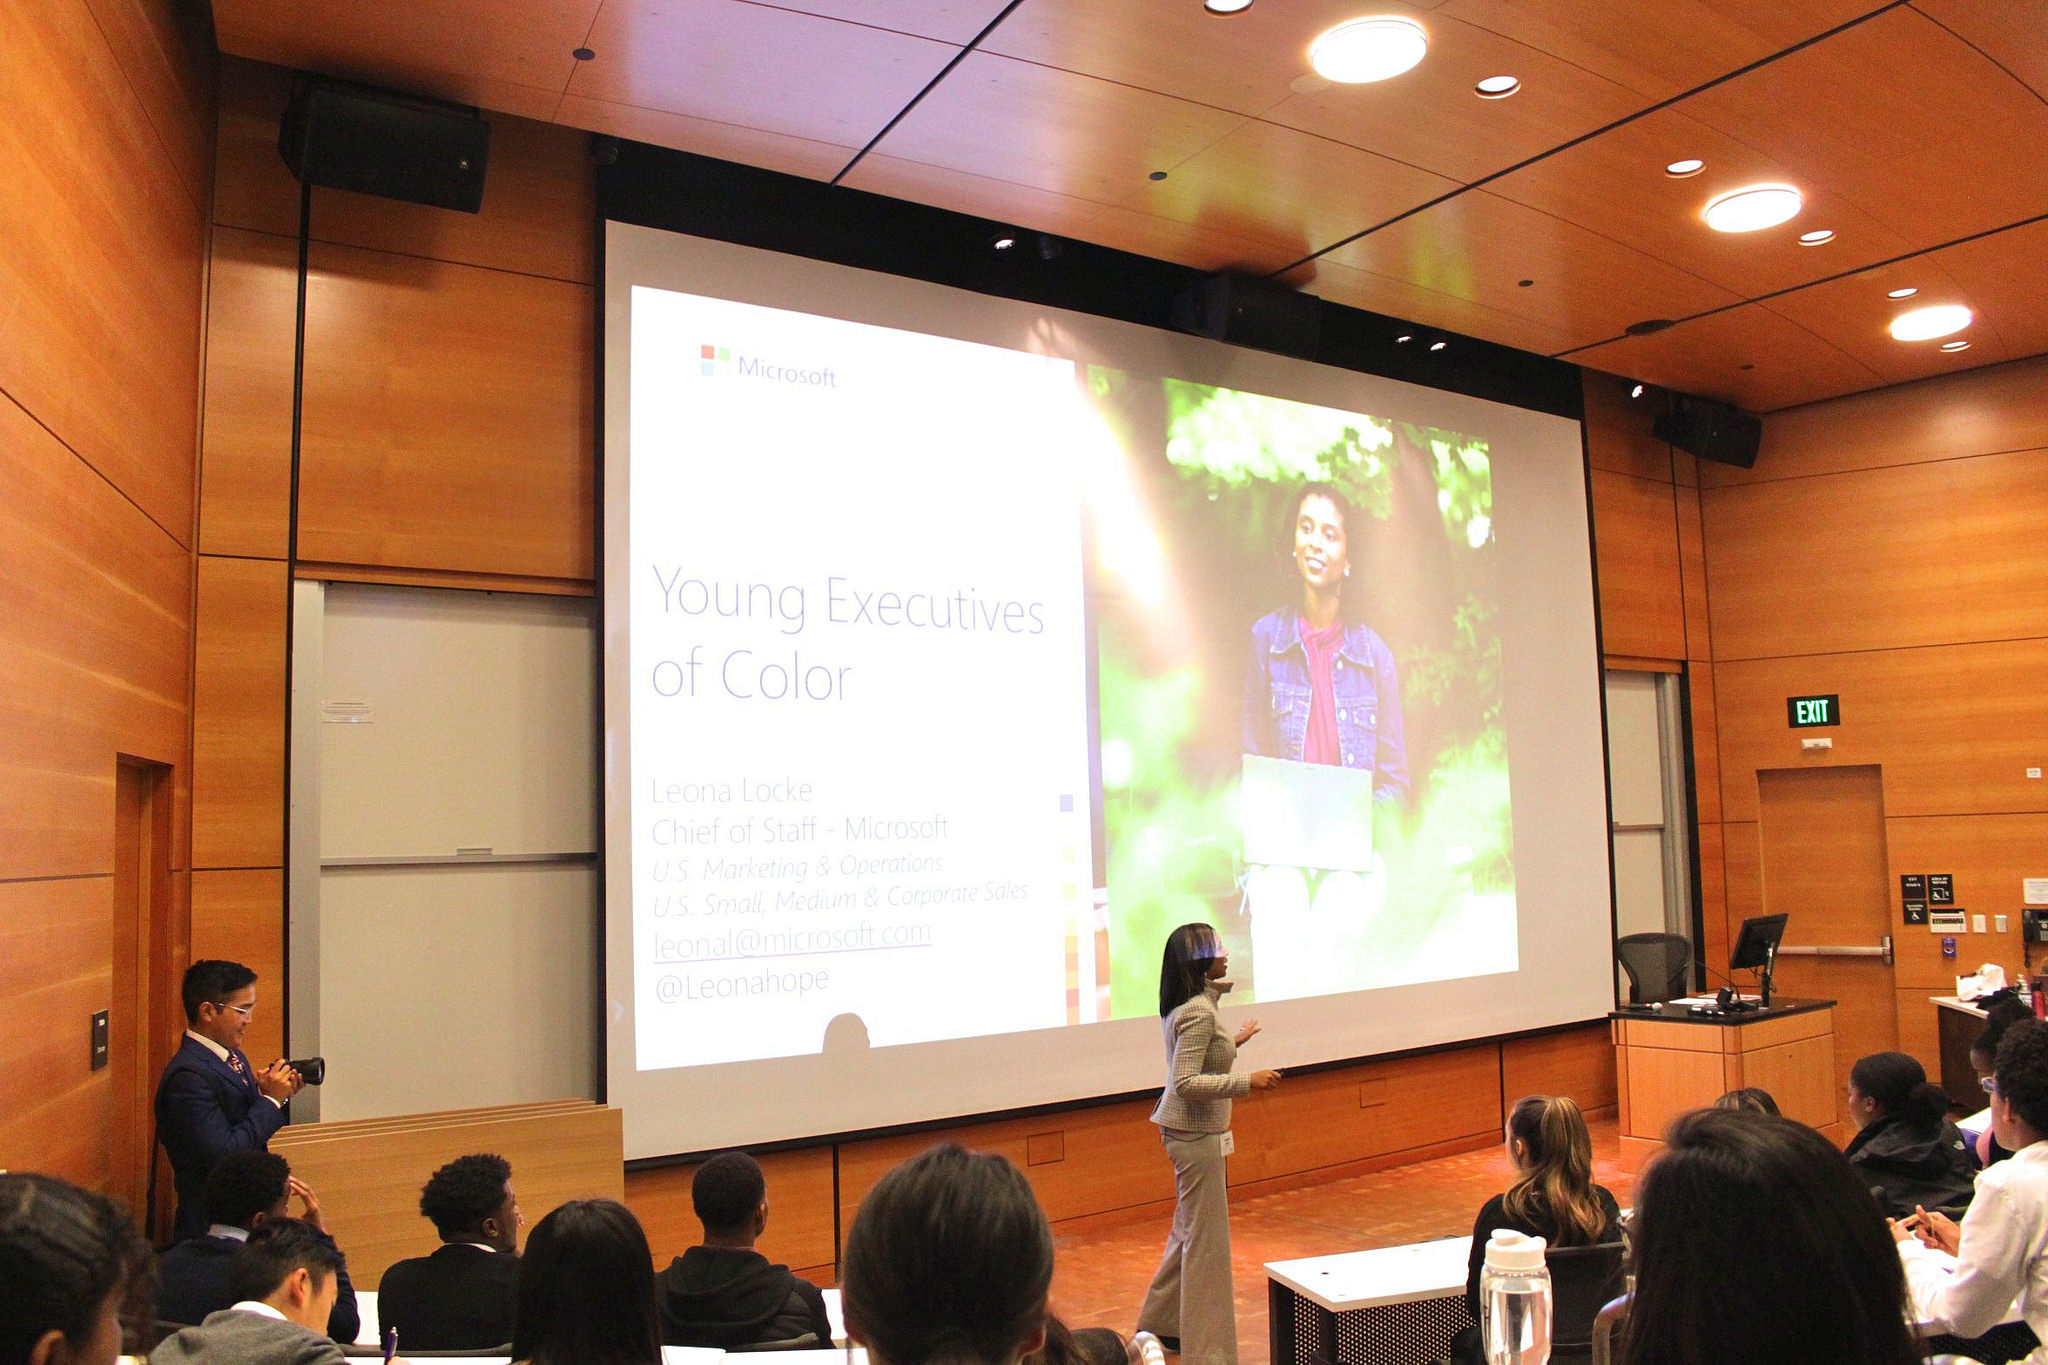 Leona Locke, Chief of Staff at Microsoft delivers keynote lecture